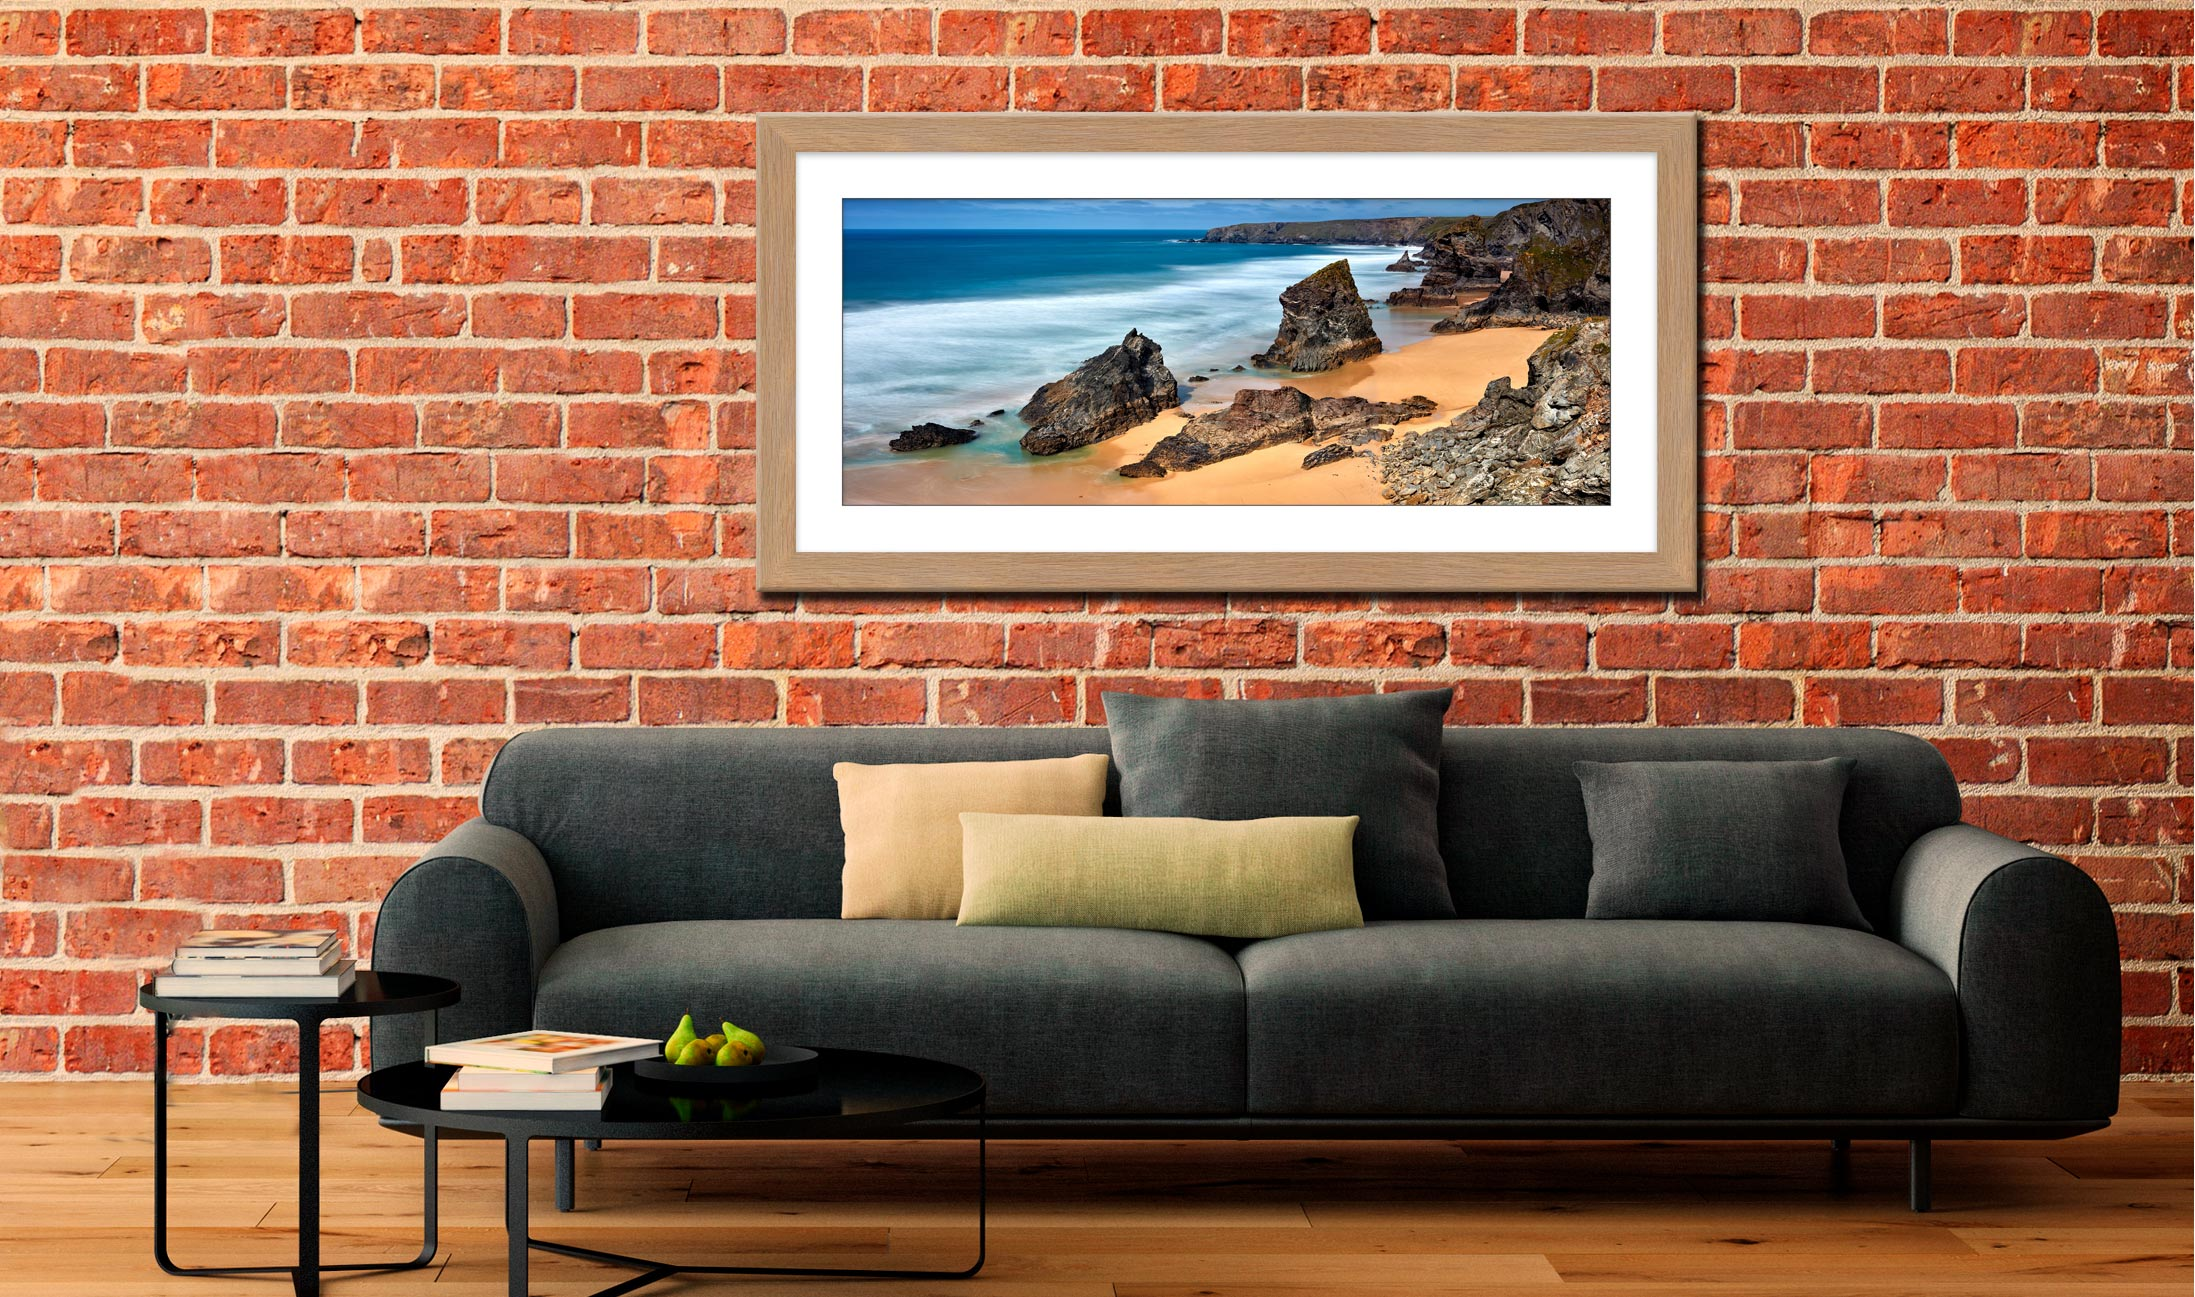 Postcard From Bedruthan Steps - Framed Print with Mount on Wall